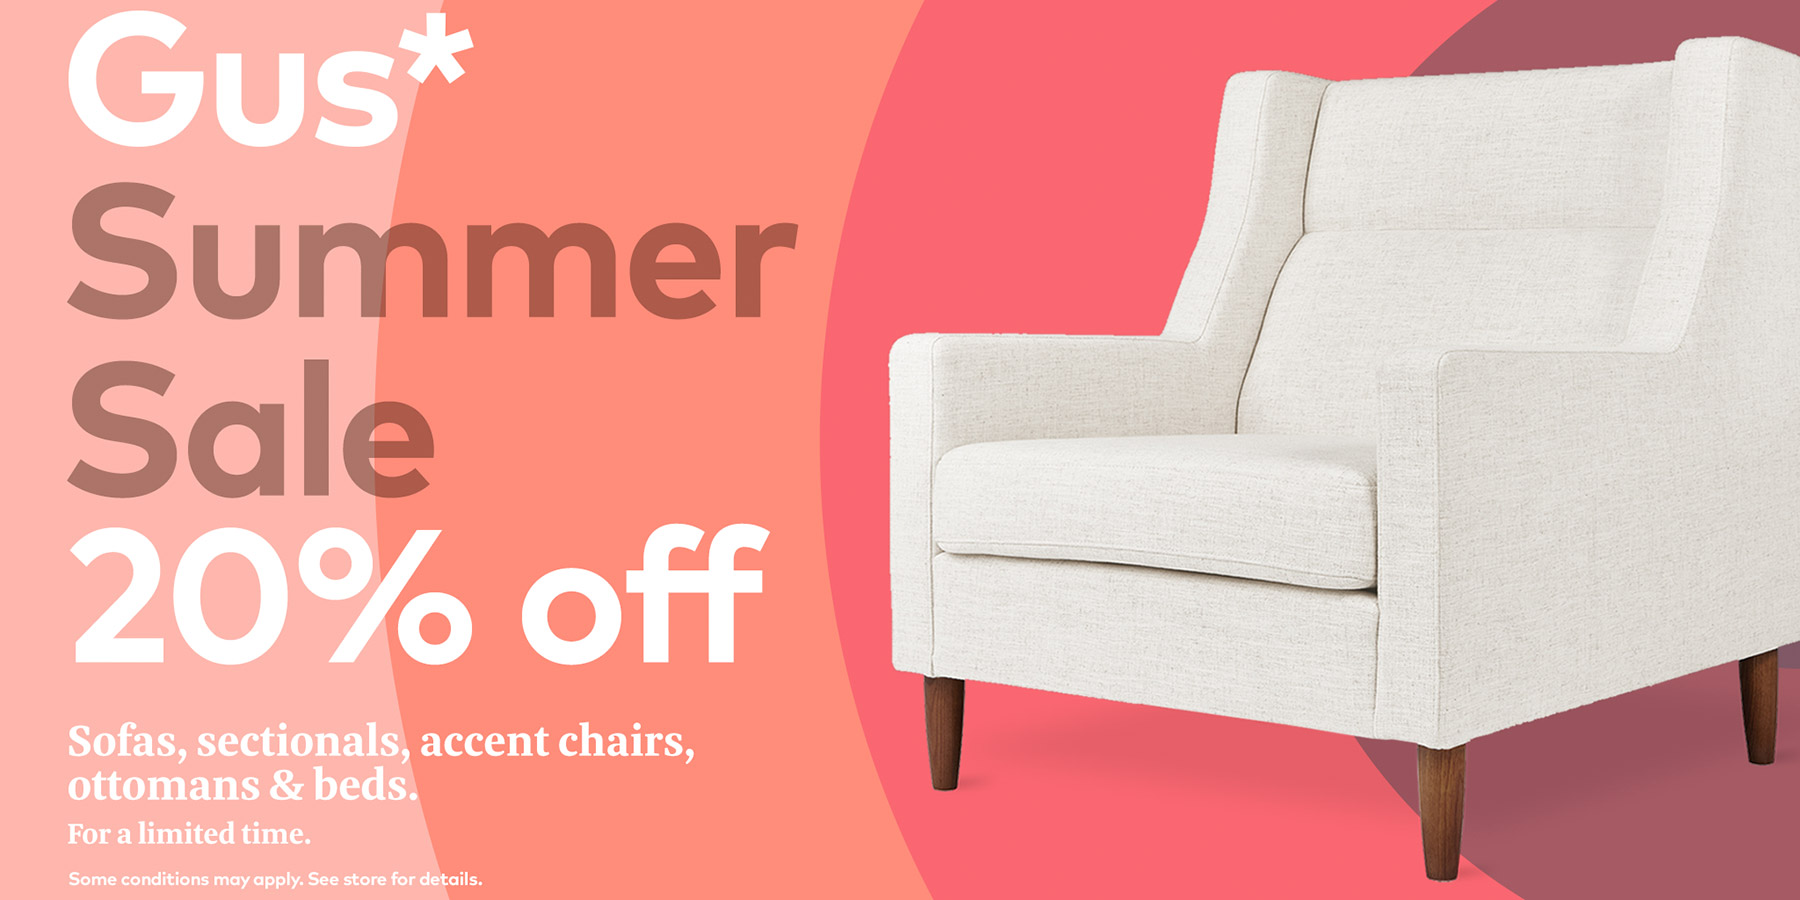 Gus* Modern Summer Sale - 20% Off Select Items | Shop Now >